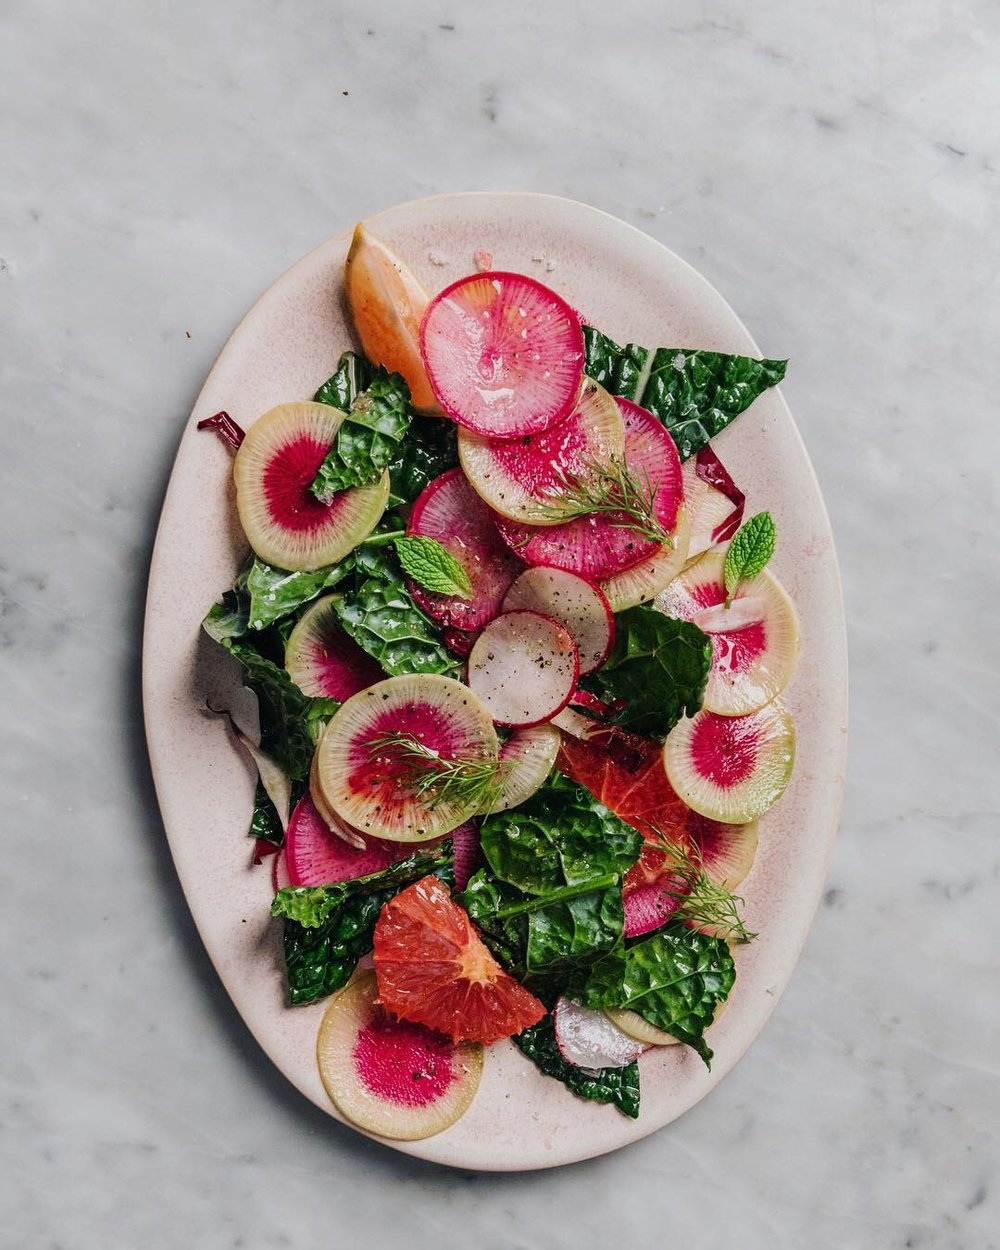 WINTER RADISH AND KALE SALAD WITH CITRUS AND HERBS #recipe #easyrecipe #wintersalads #watermelonradish #foodstyling